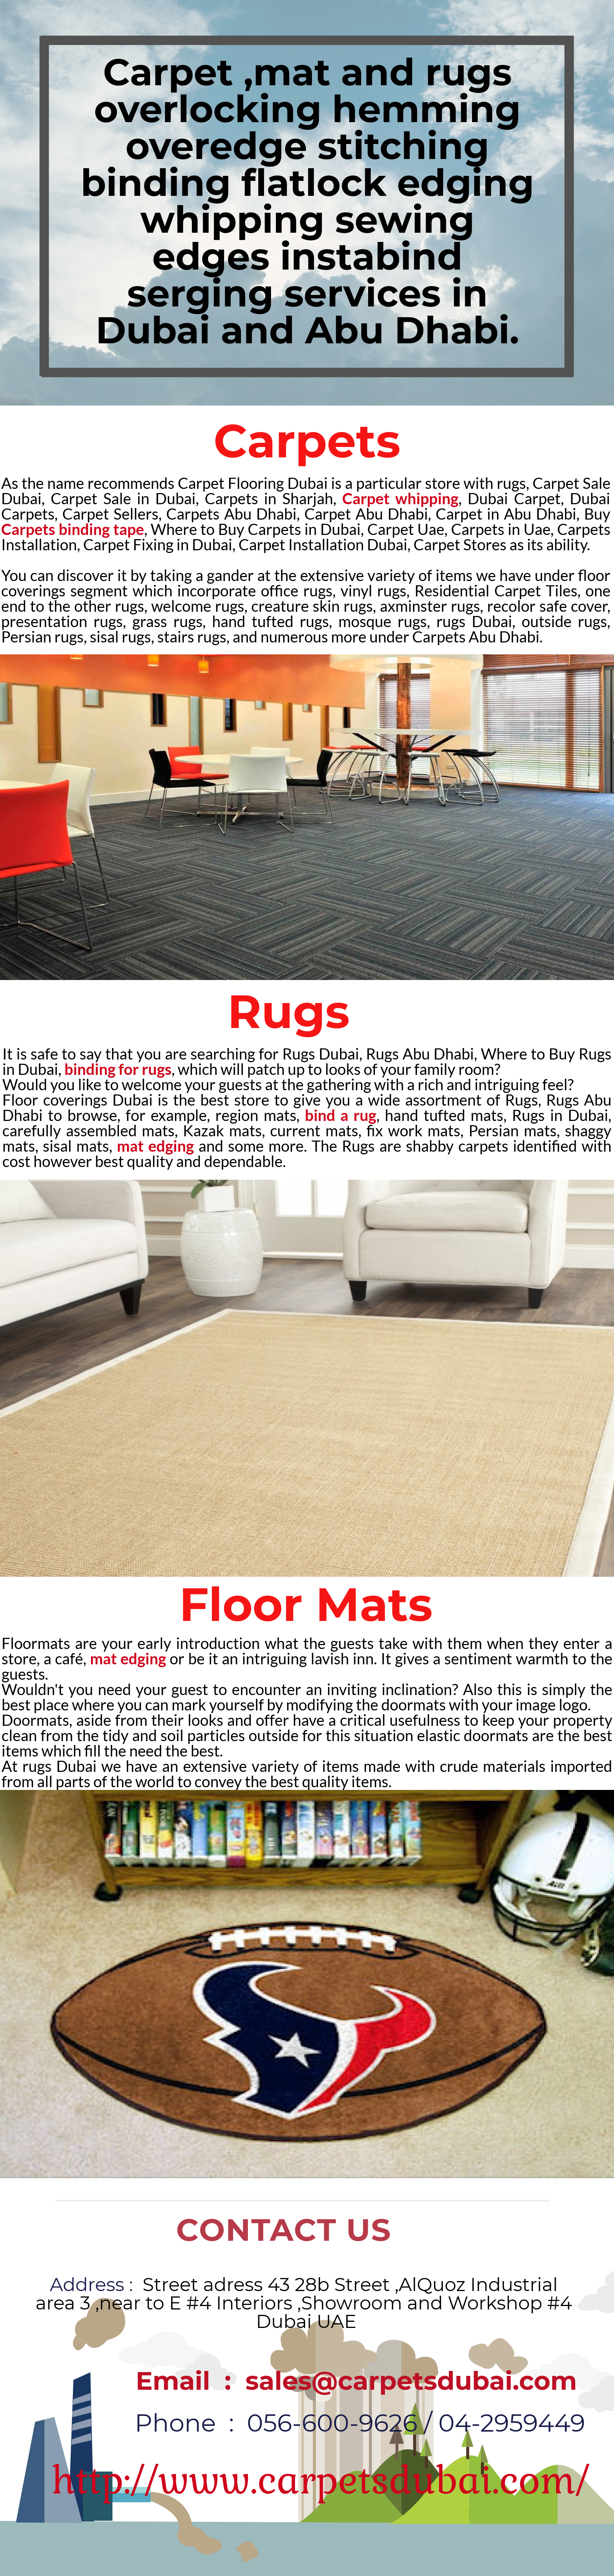 All kinds of flooring supply and installation in dubai and abu dhabi all kinds of flooring supply and installation in dubai and abu dhabi all kinds of flooring supply and installation in dubai and abu dhabi solutioingenieria Gallery